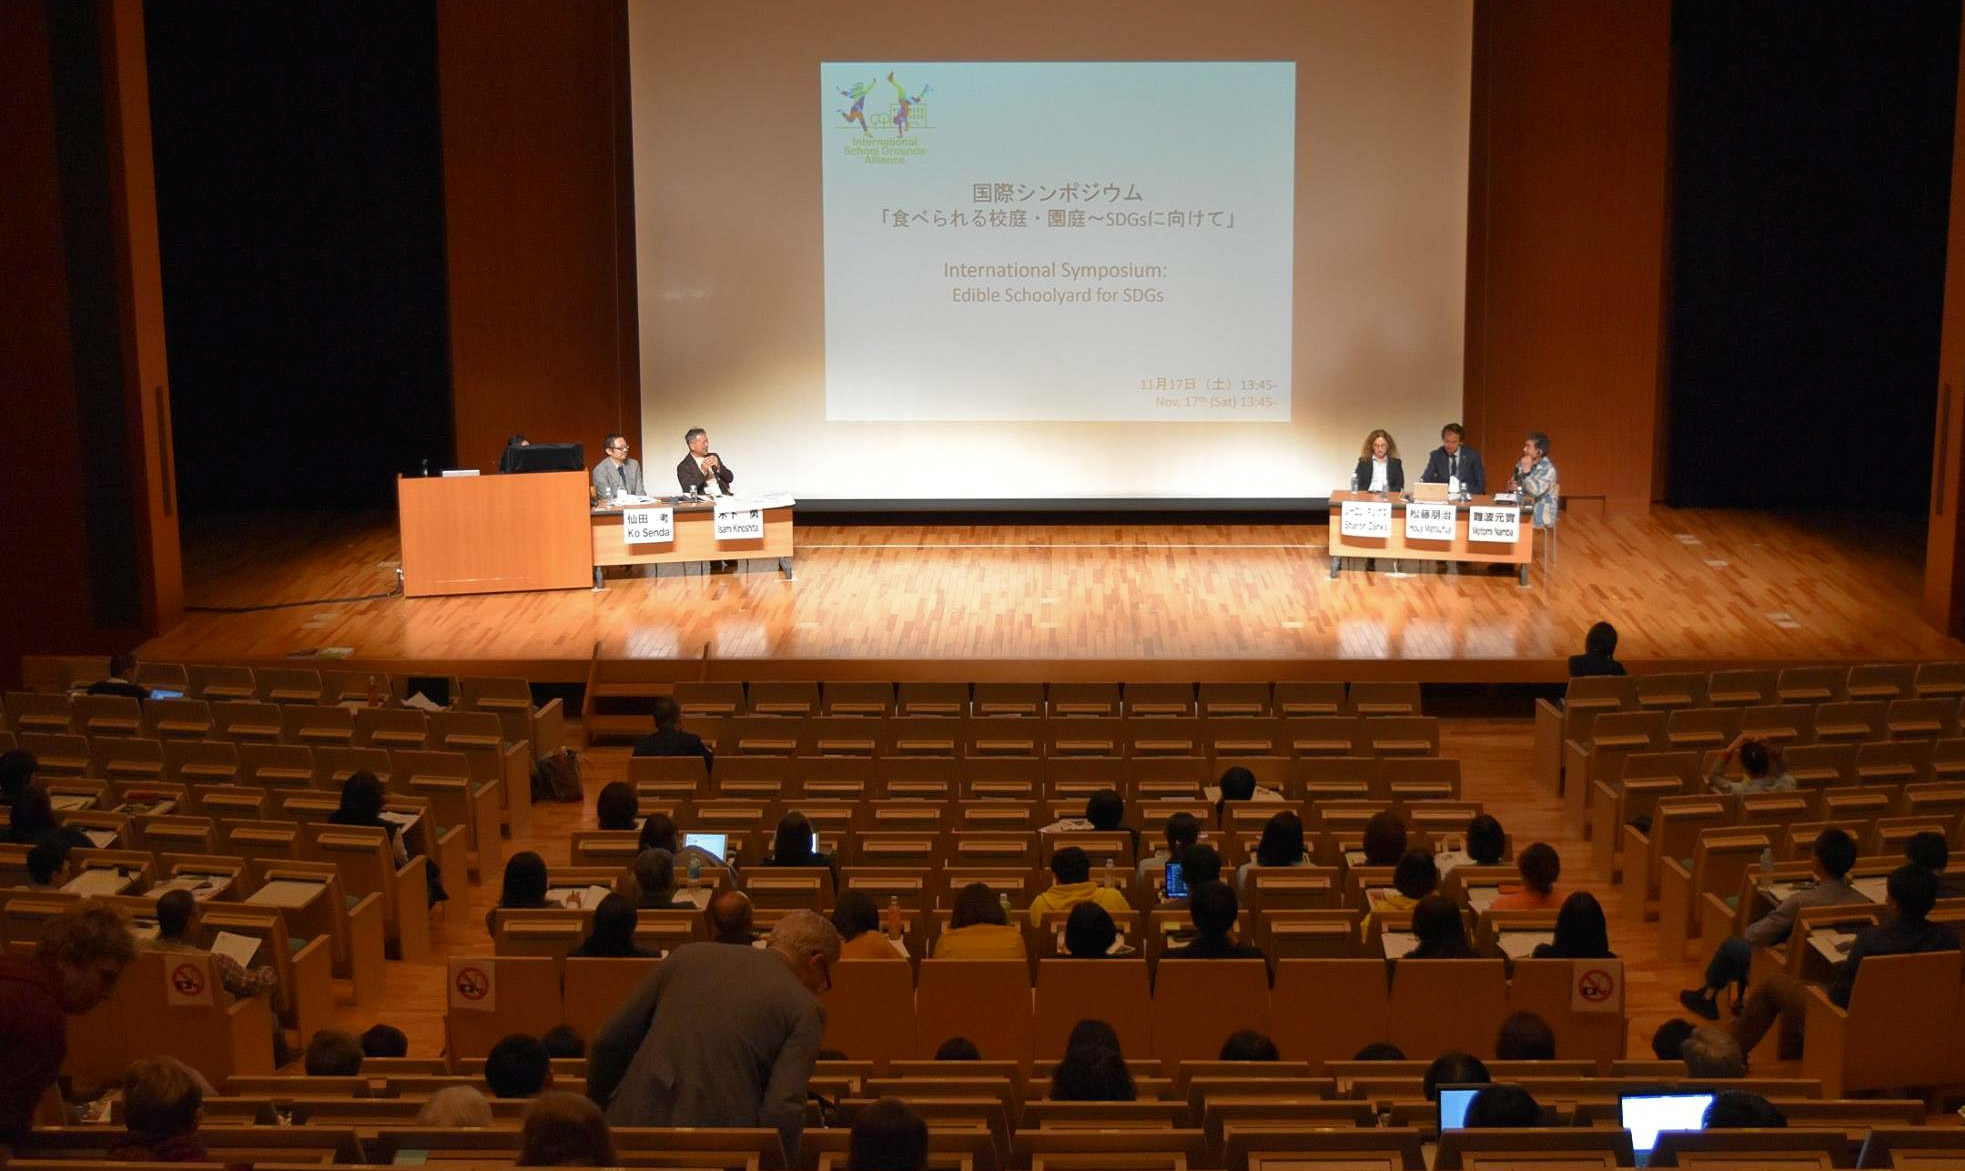 Sharon Danks shared Green Schoolyards America's work at the international symposium in Japan.